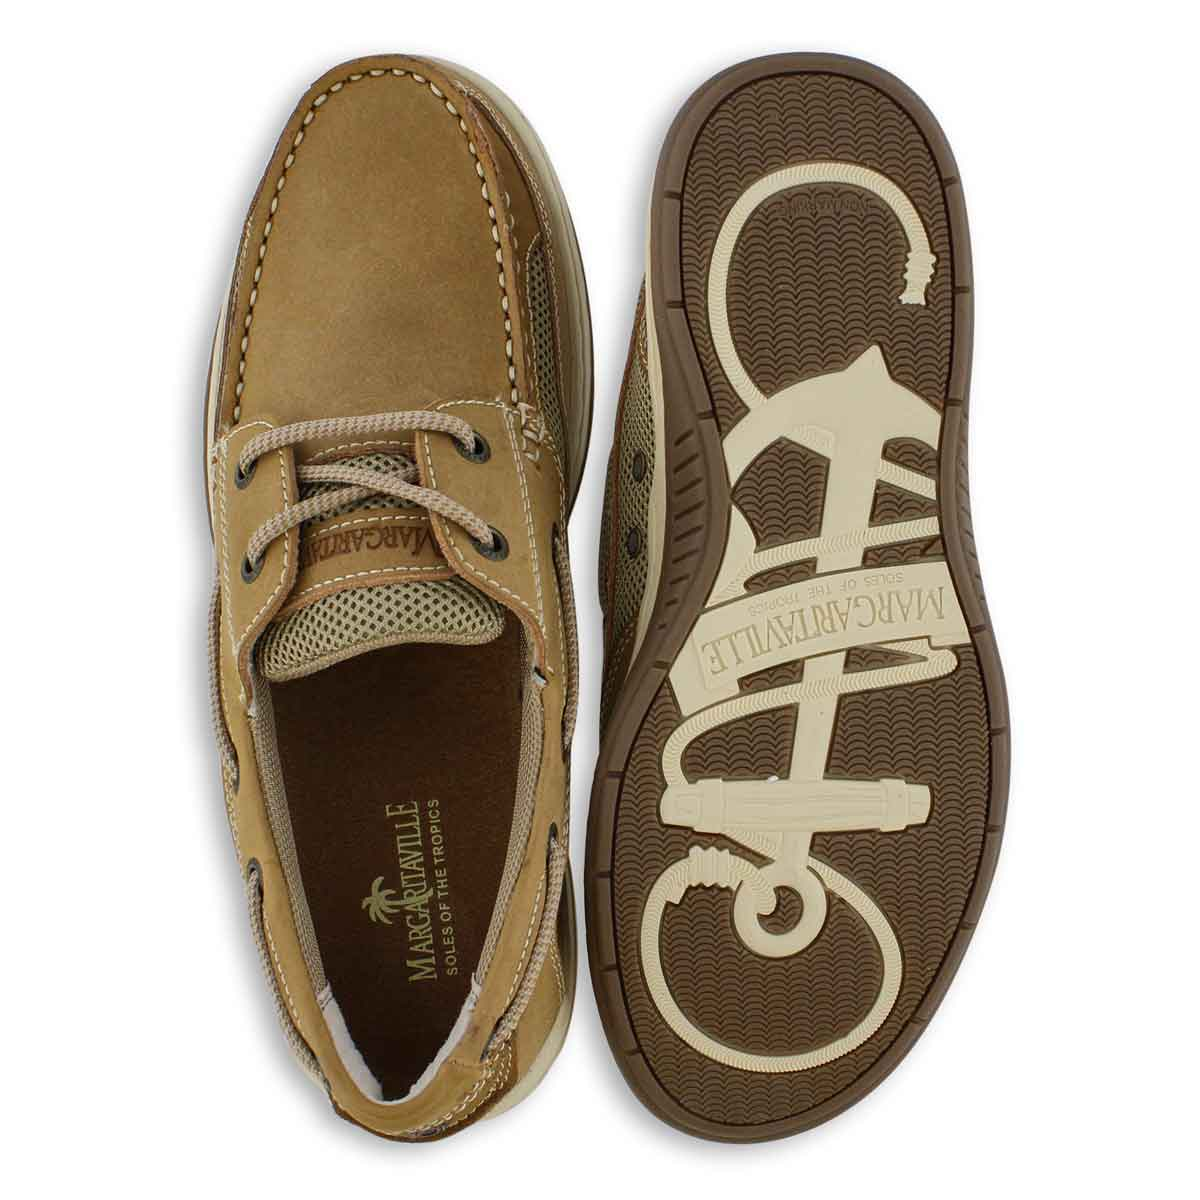 Mns Anchor tan lace up boat shoe